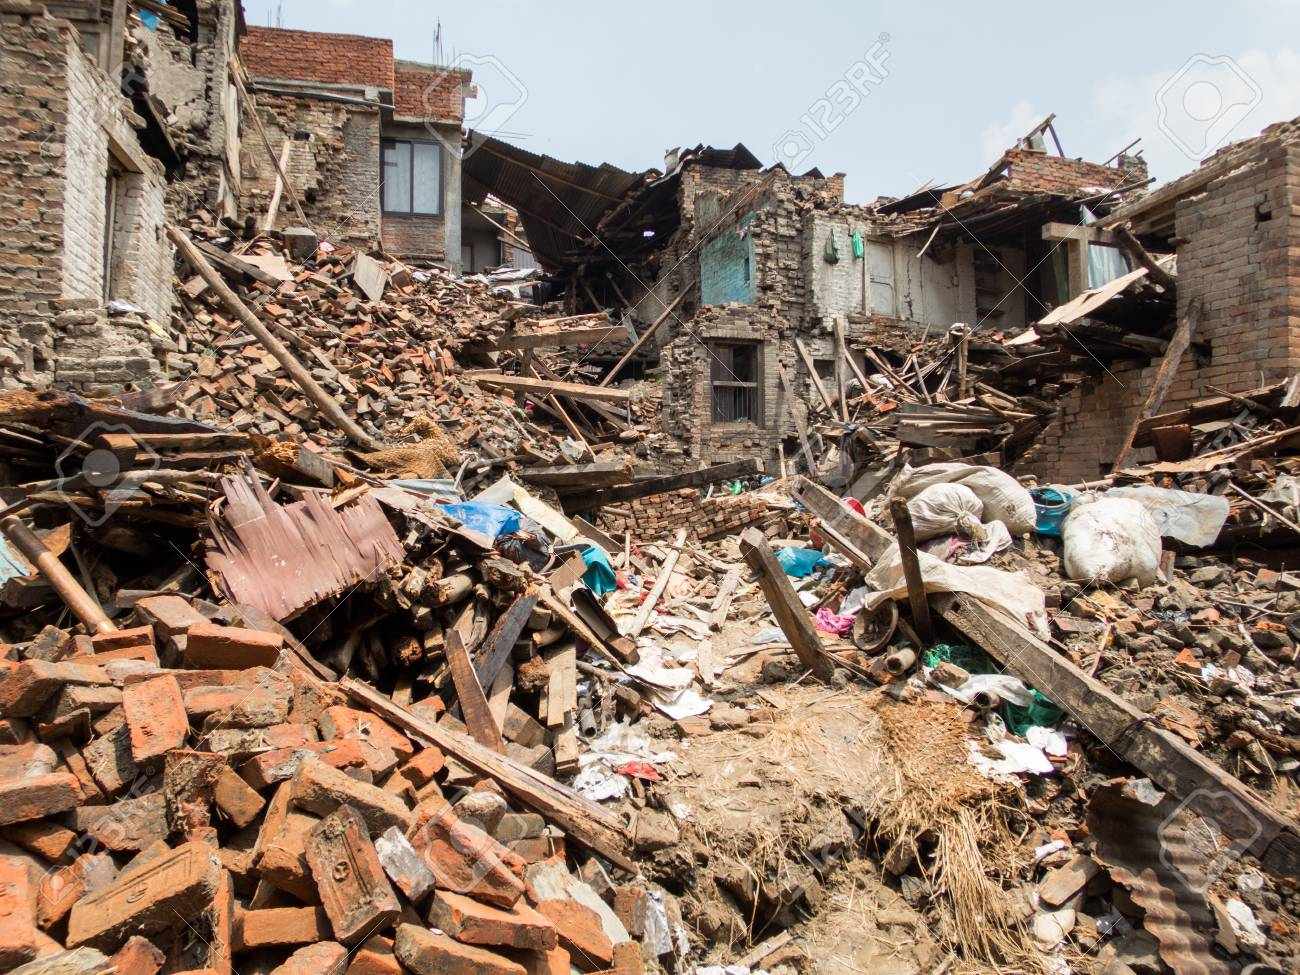 Nepal Earthquake which occurred on April 25 and May 12 of 2015. - 43513659